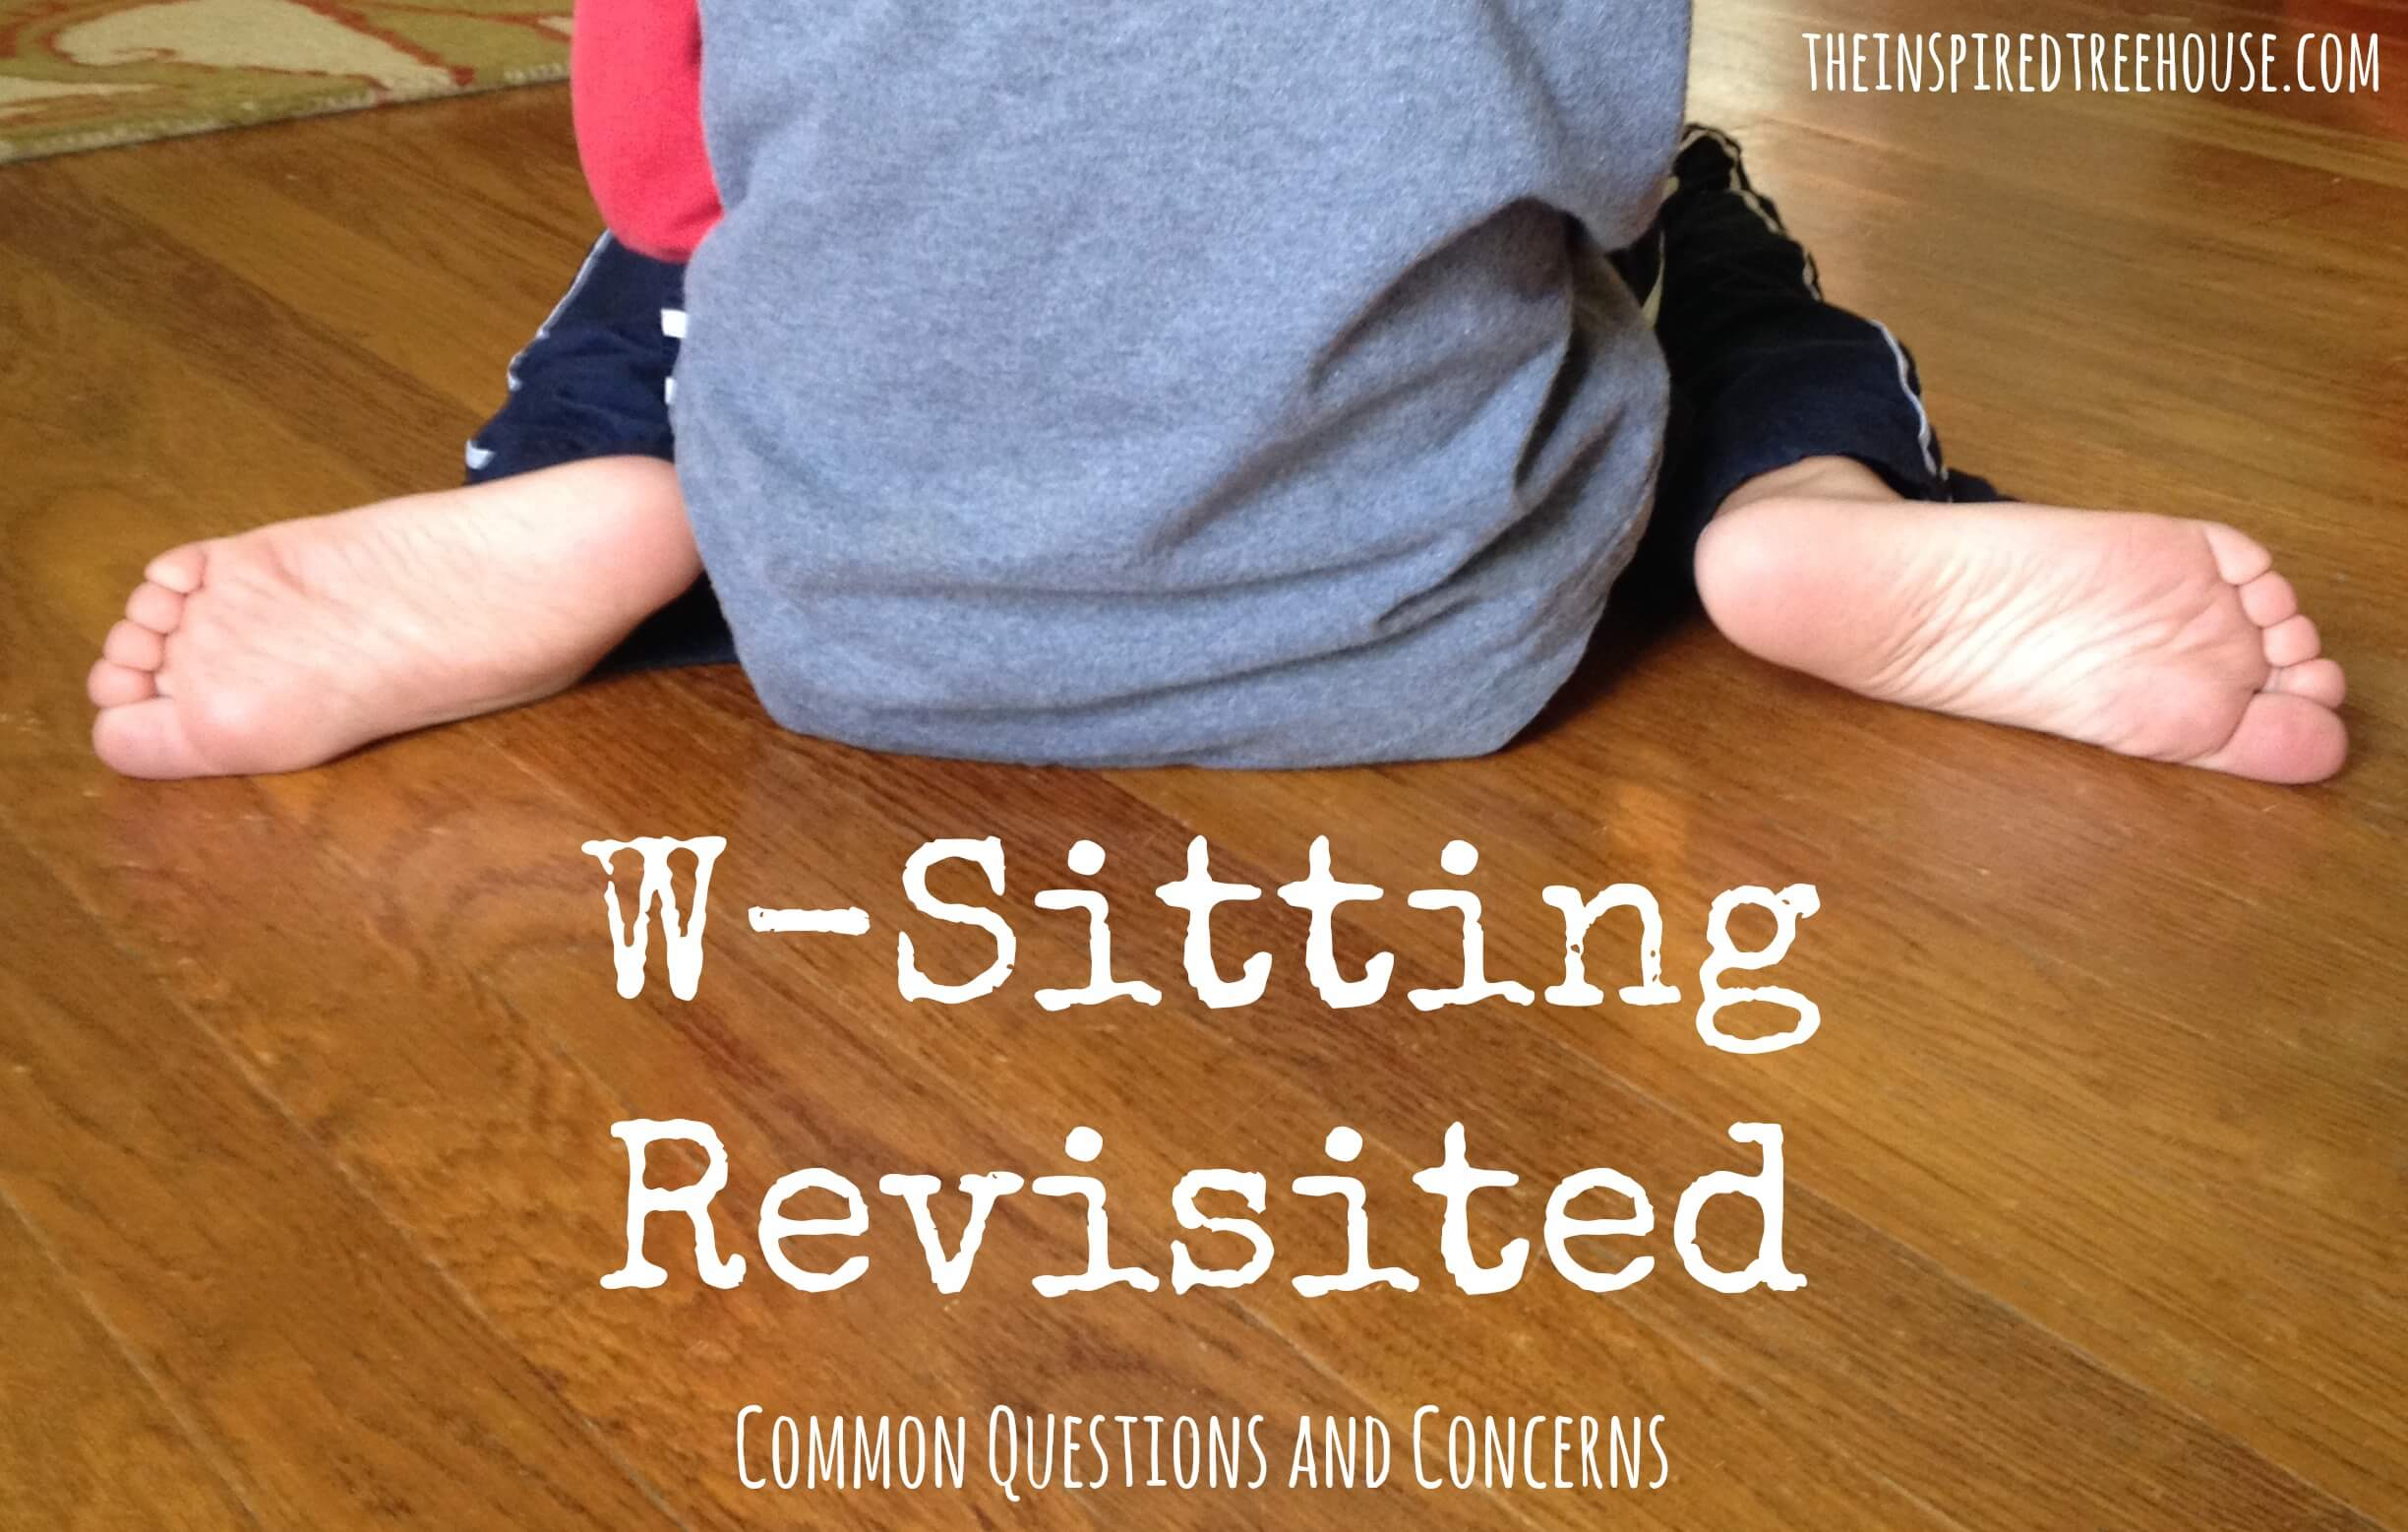 child development w sitting revisited common questions and concerns image